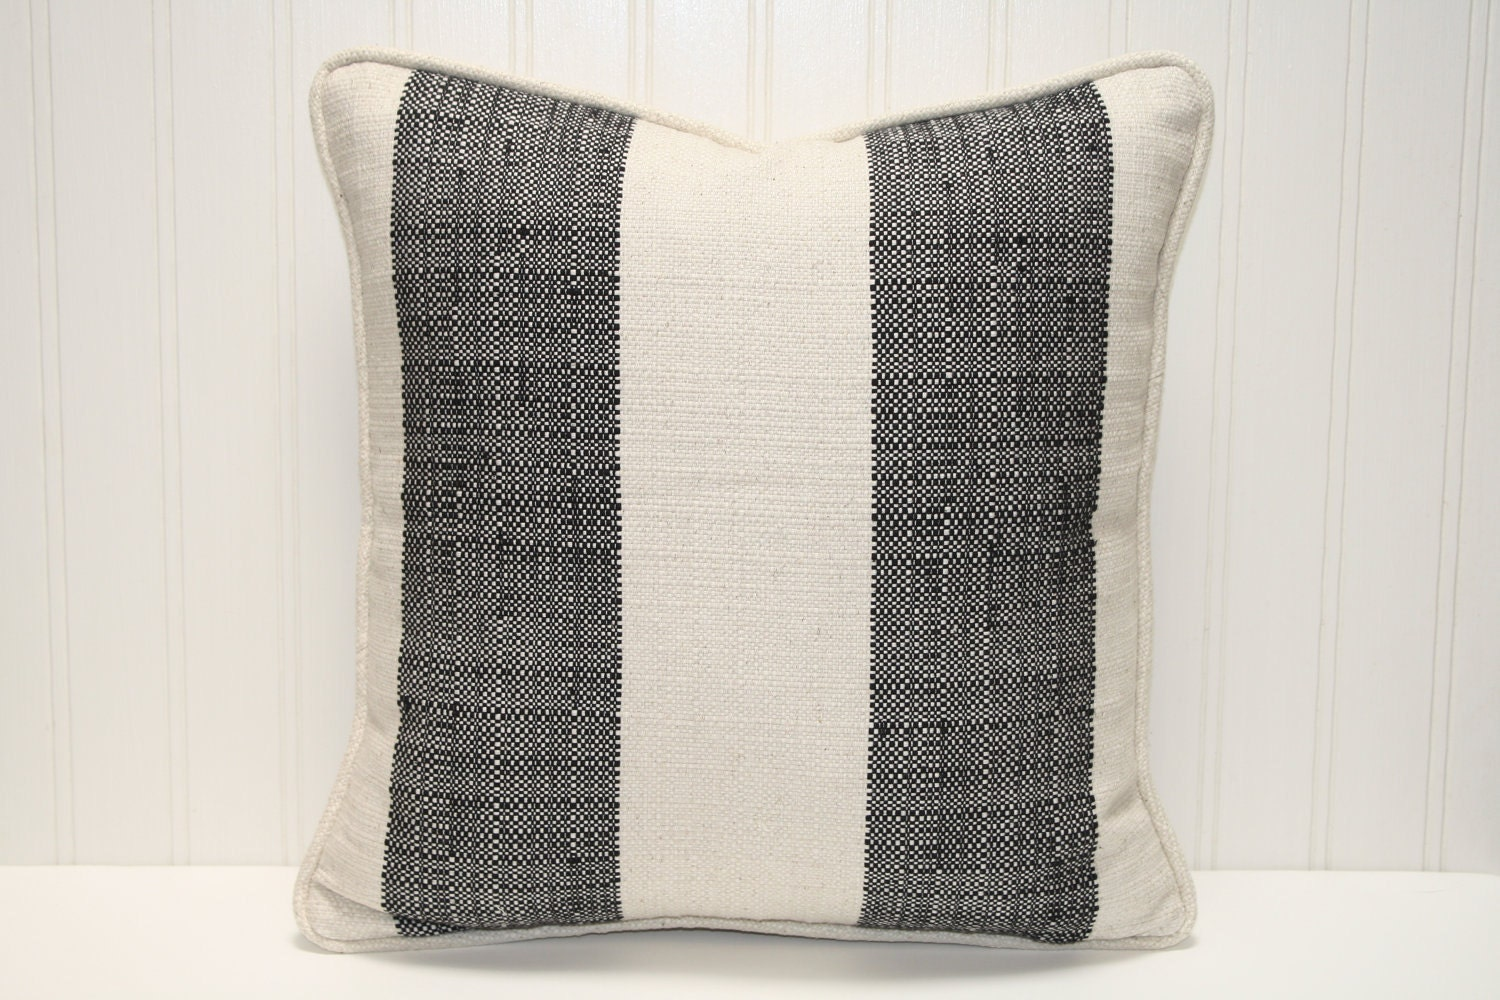 15 Inch Throw Pillow Covers : Decorative Pillow Cover 15 by 15 inch Ranch